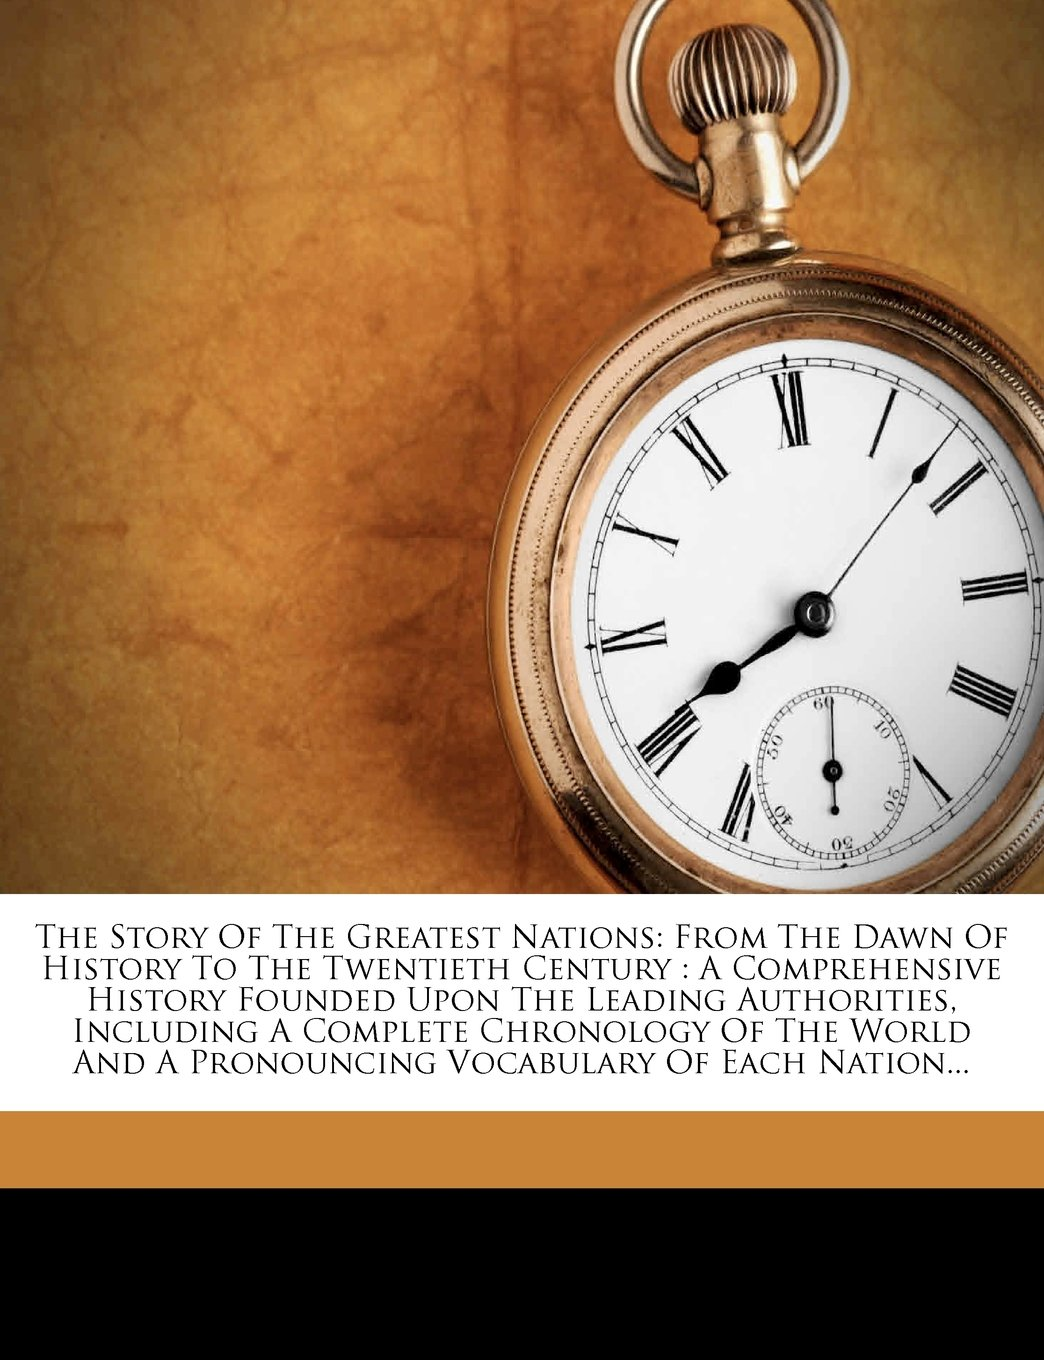 Download The Story Of The Greatest Nations: From The Dawn Of History To The Twentieth Century : A Comprehensive History Founded Upon The Leading Authorities, ... A Pronouncing Vocabulary Of Each Nation... ebook